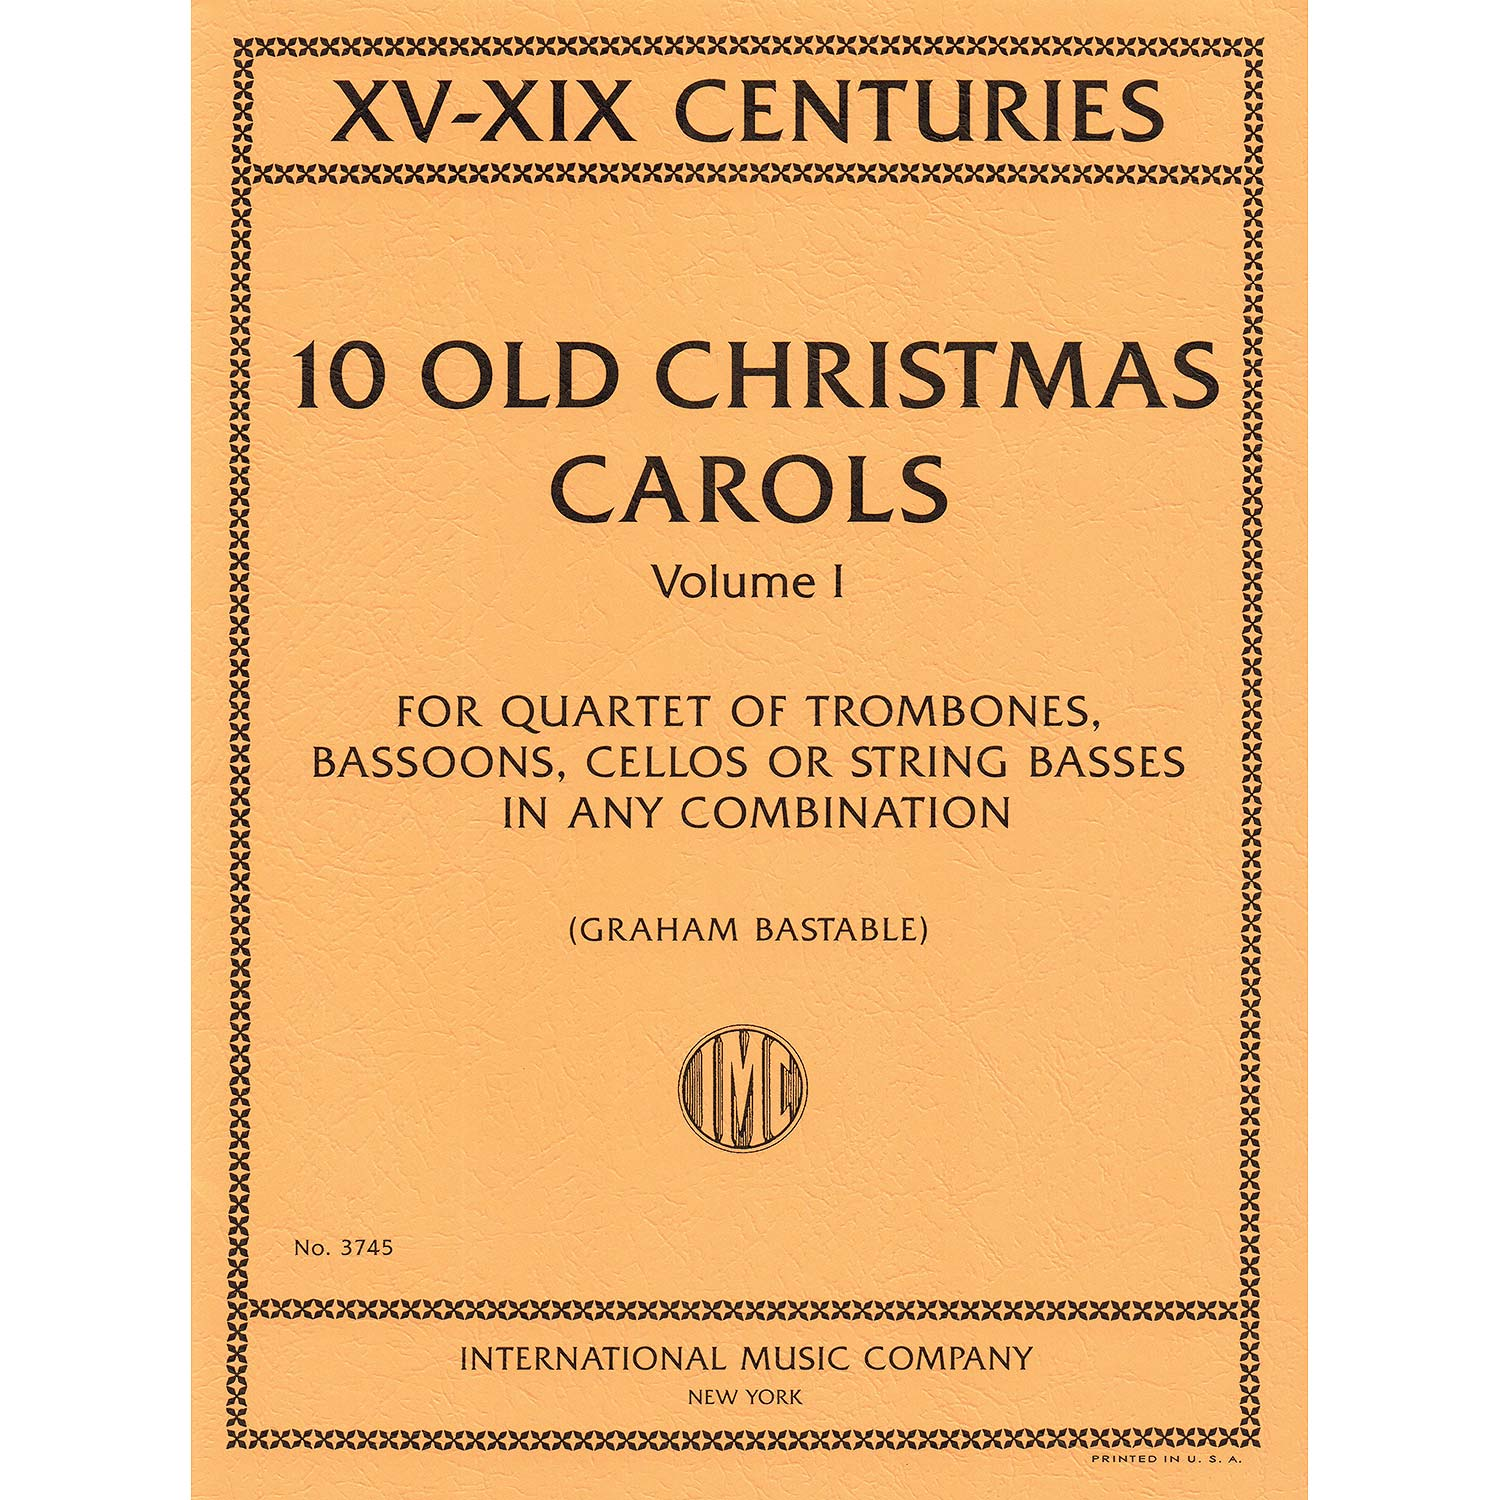 10 Old Christmas Carols volume 1 for 2 cellos; Various authors ...